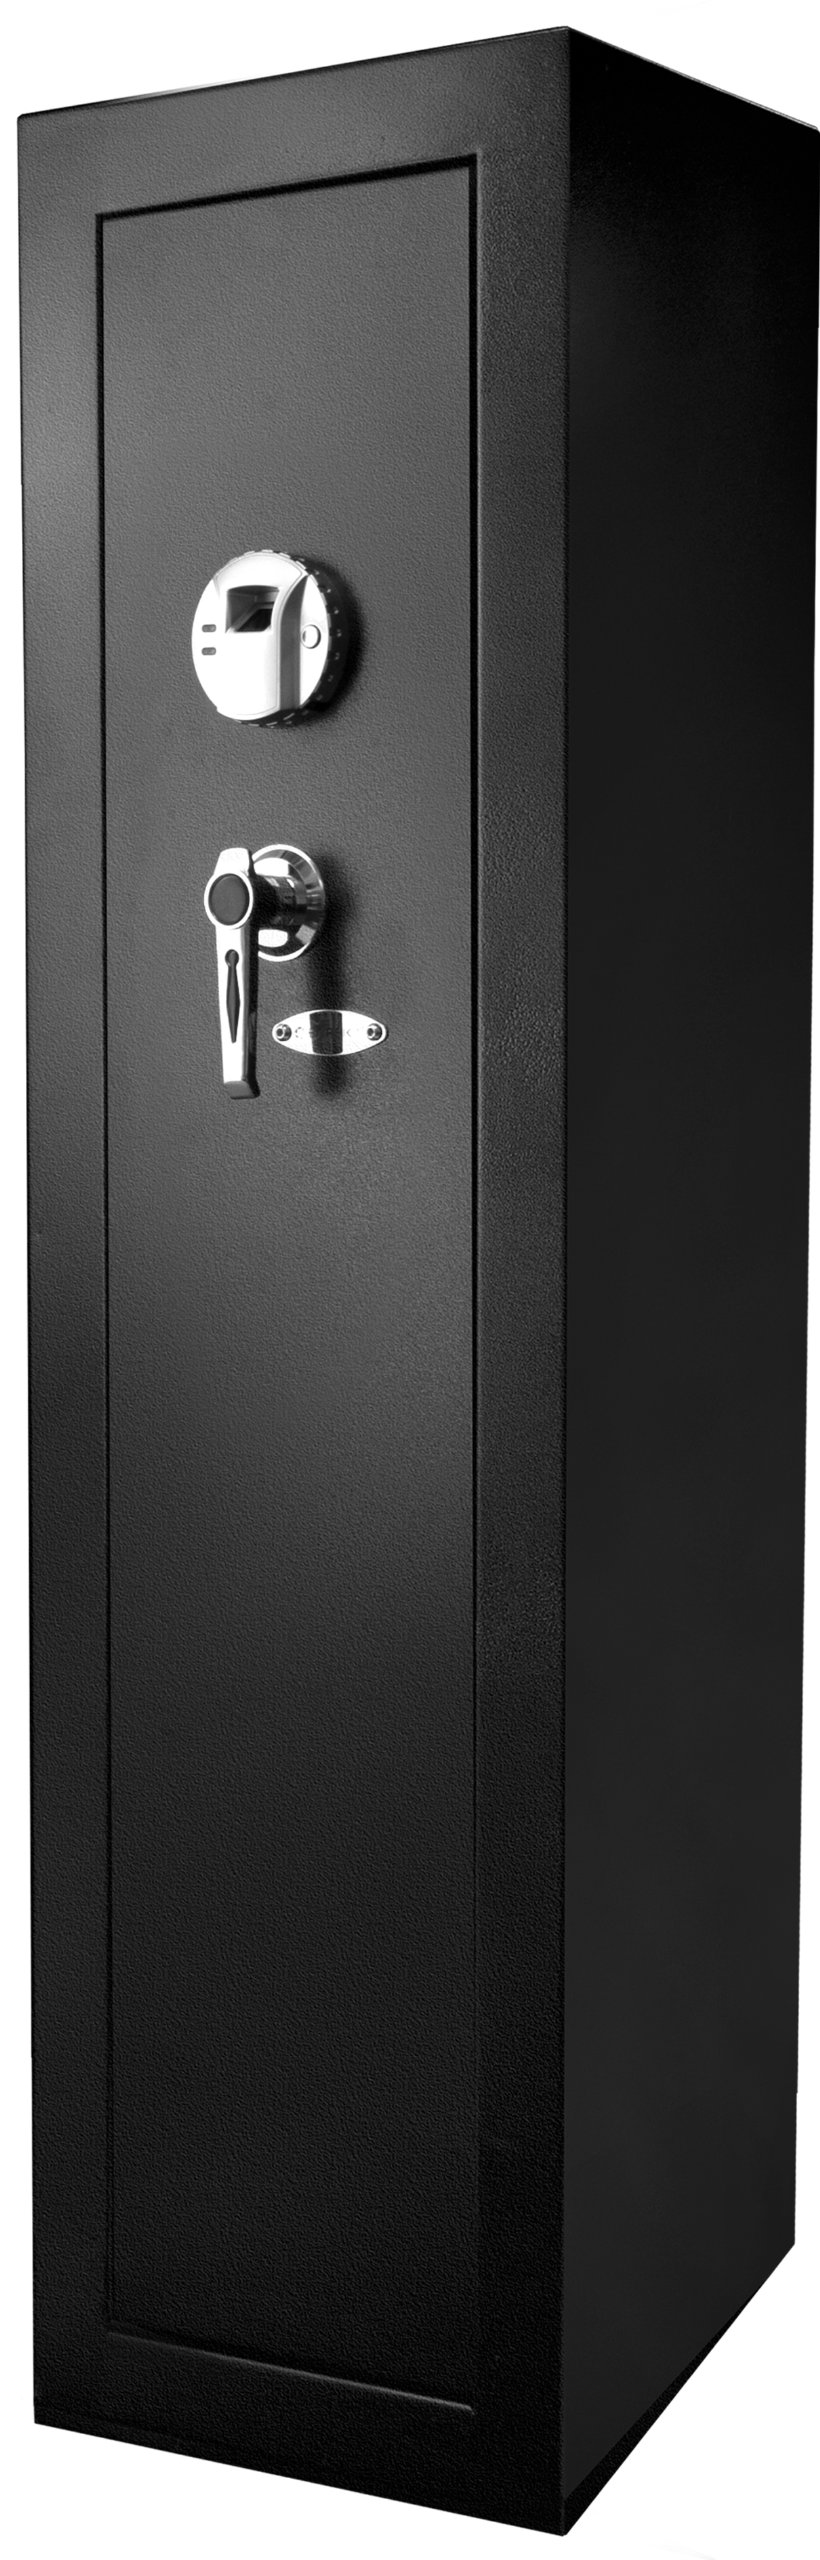 Barska Large Biometric Safe by BARSKA (Image #1)